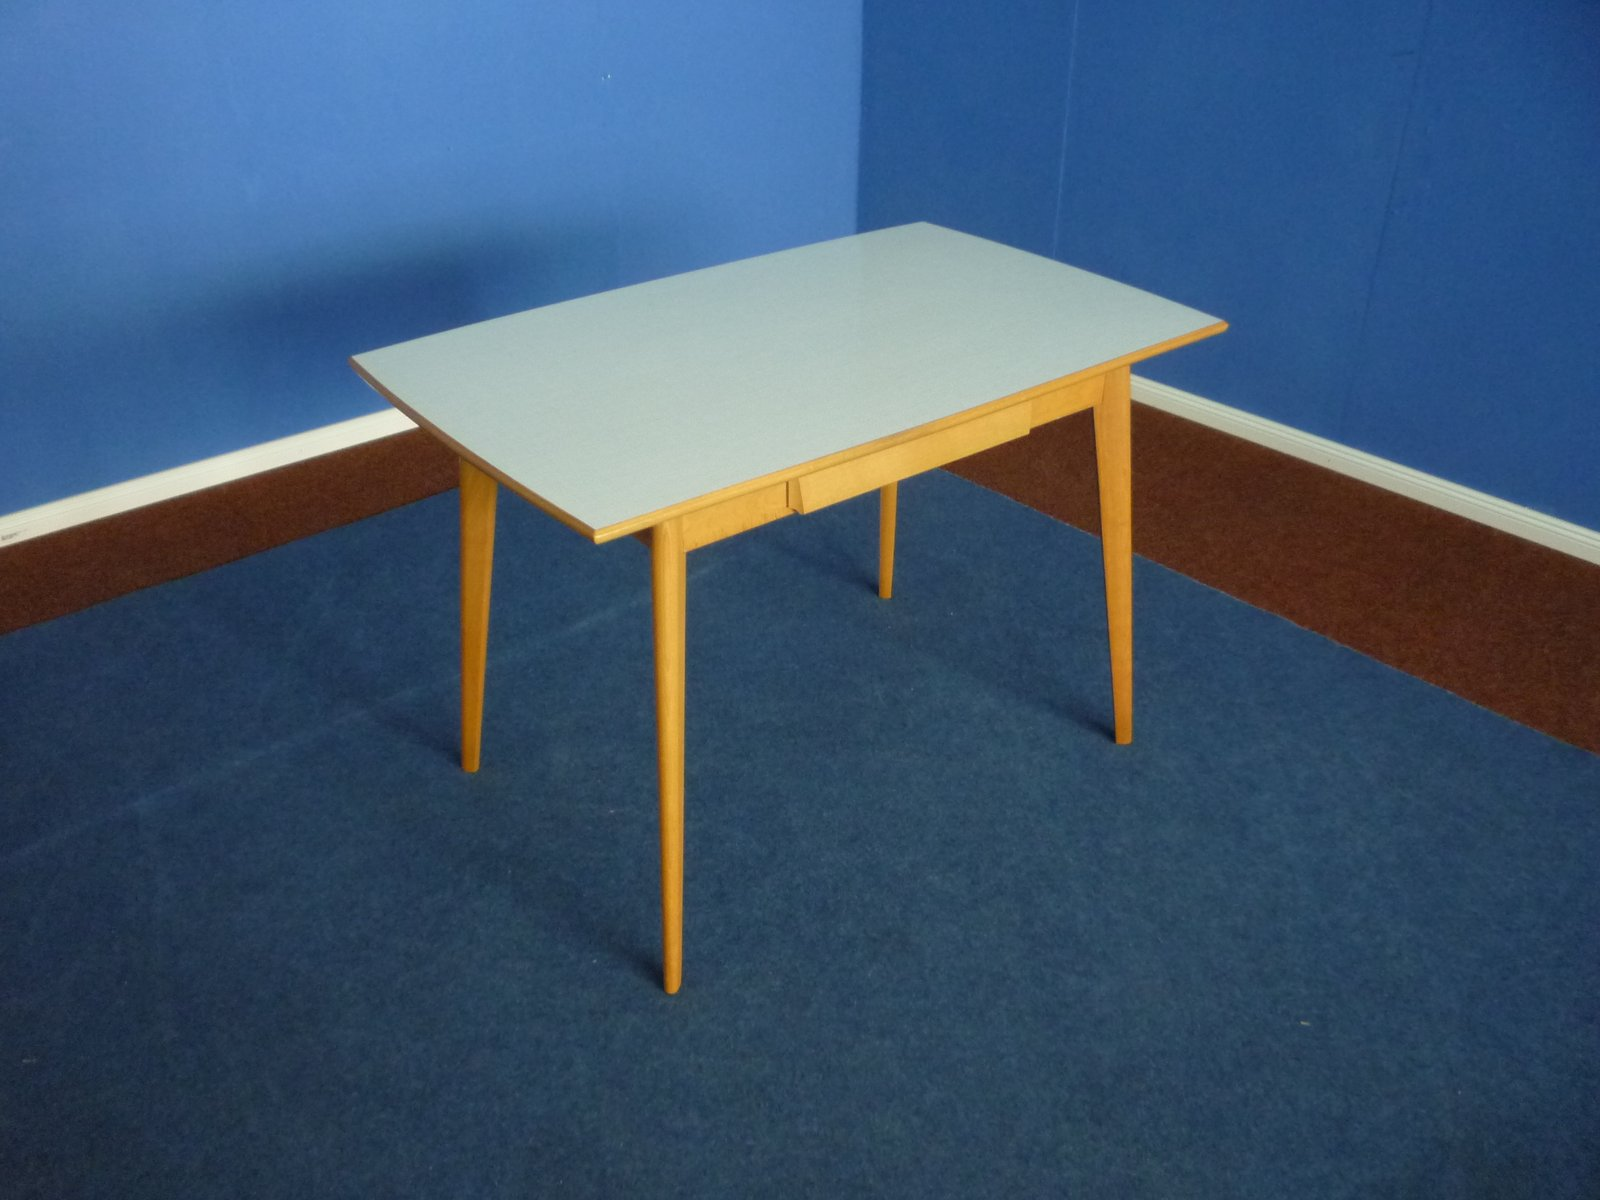 formica  u0026 beech kitchen table 1950s formica  u0026 beech kitchen table 1950s for sale at pamono  rh   pamono com